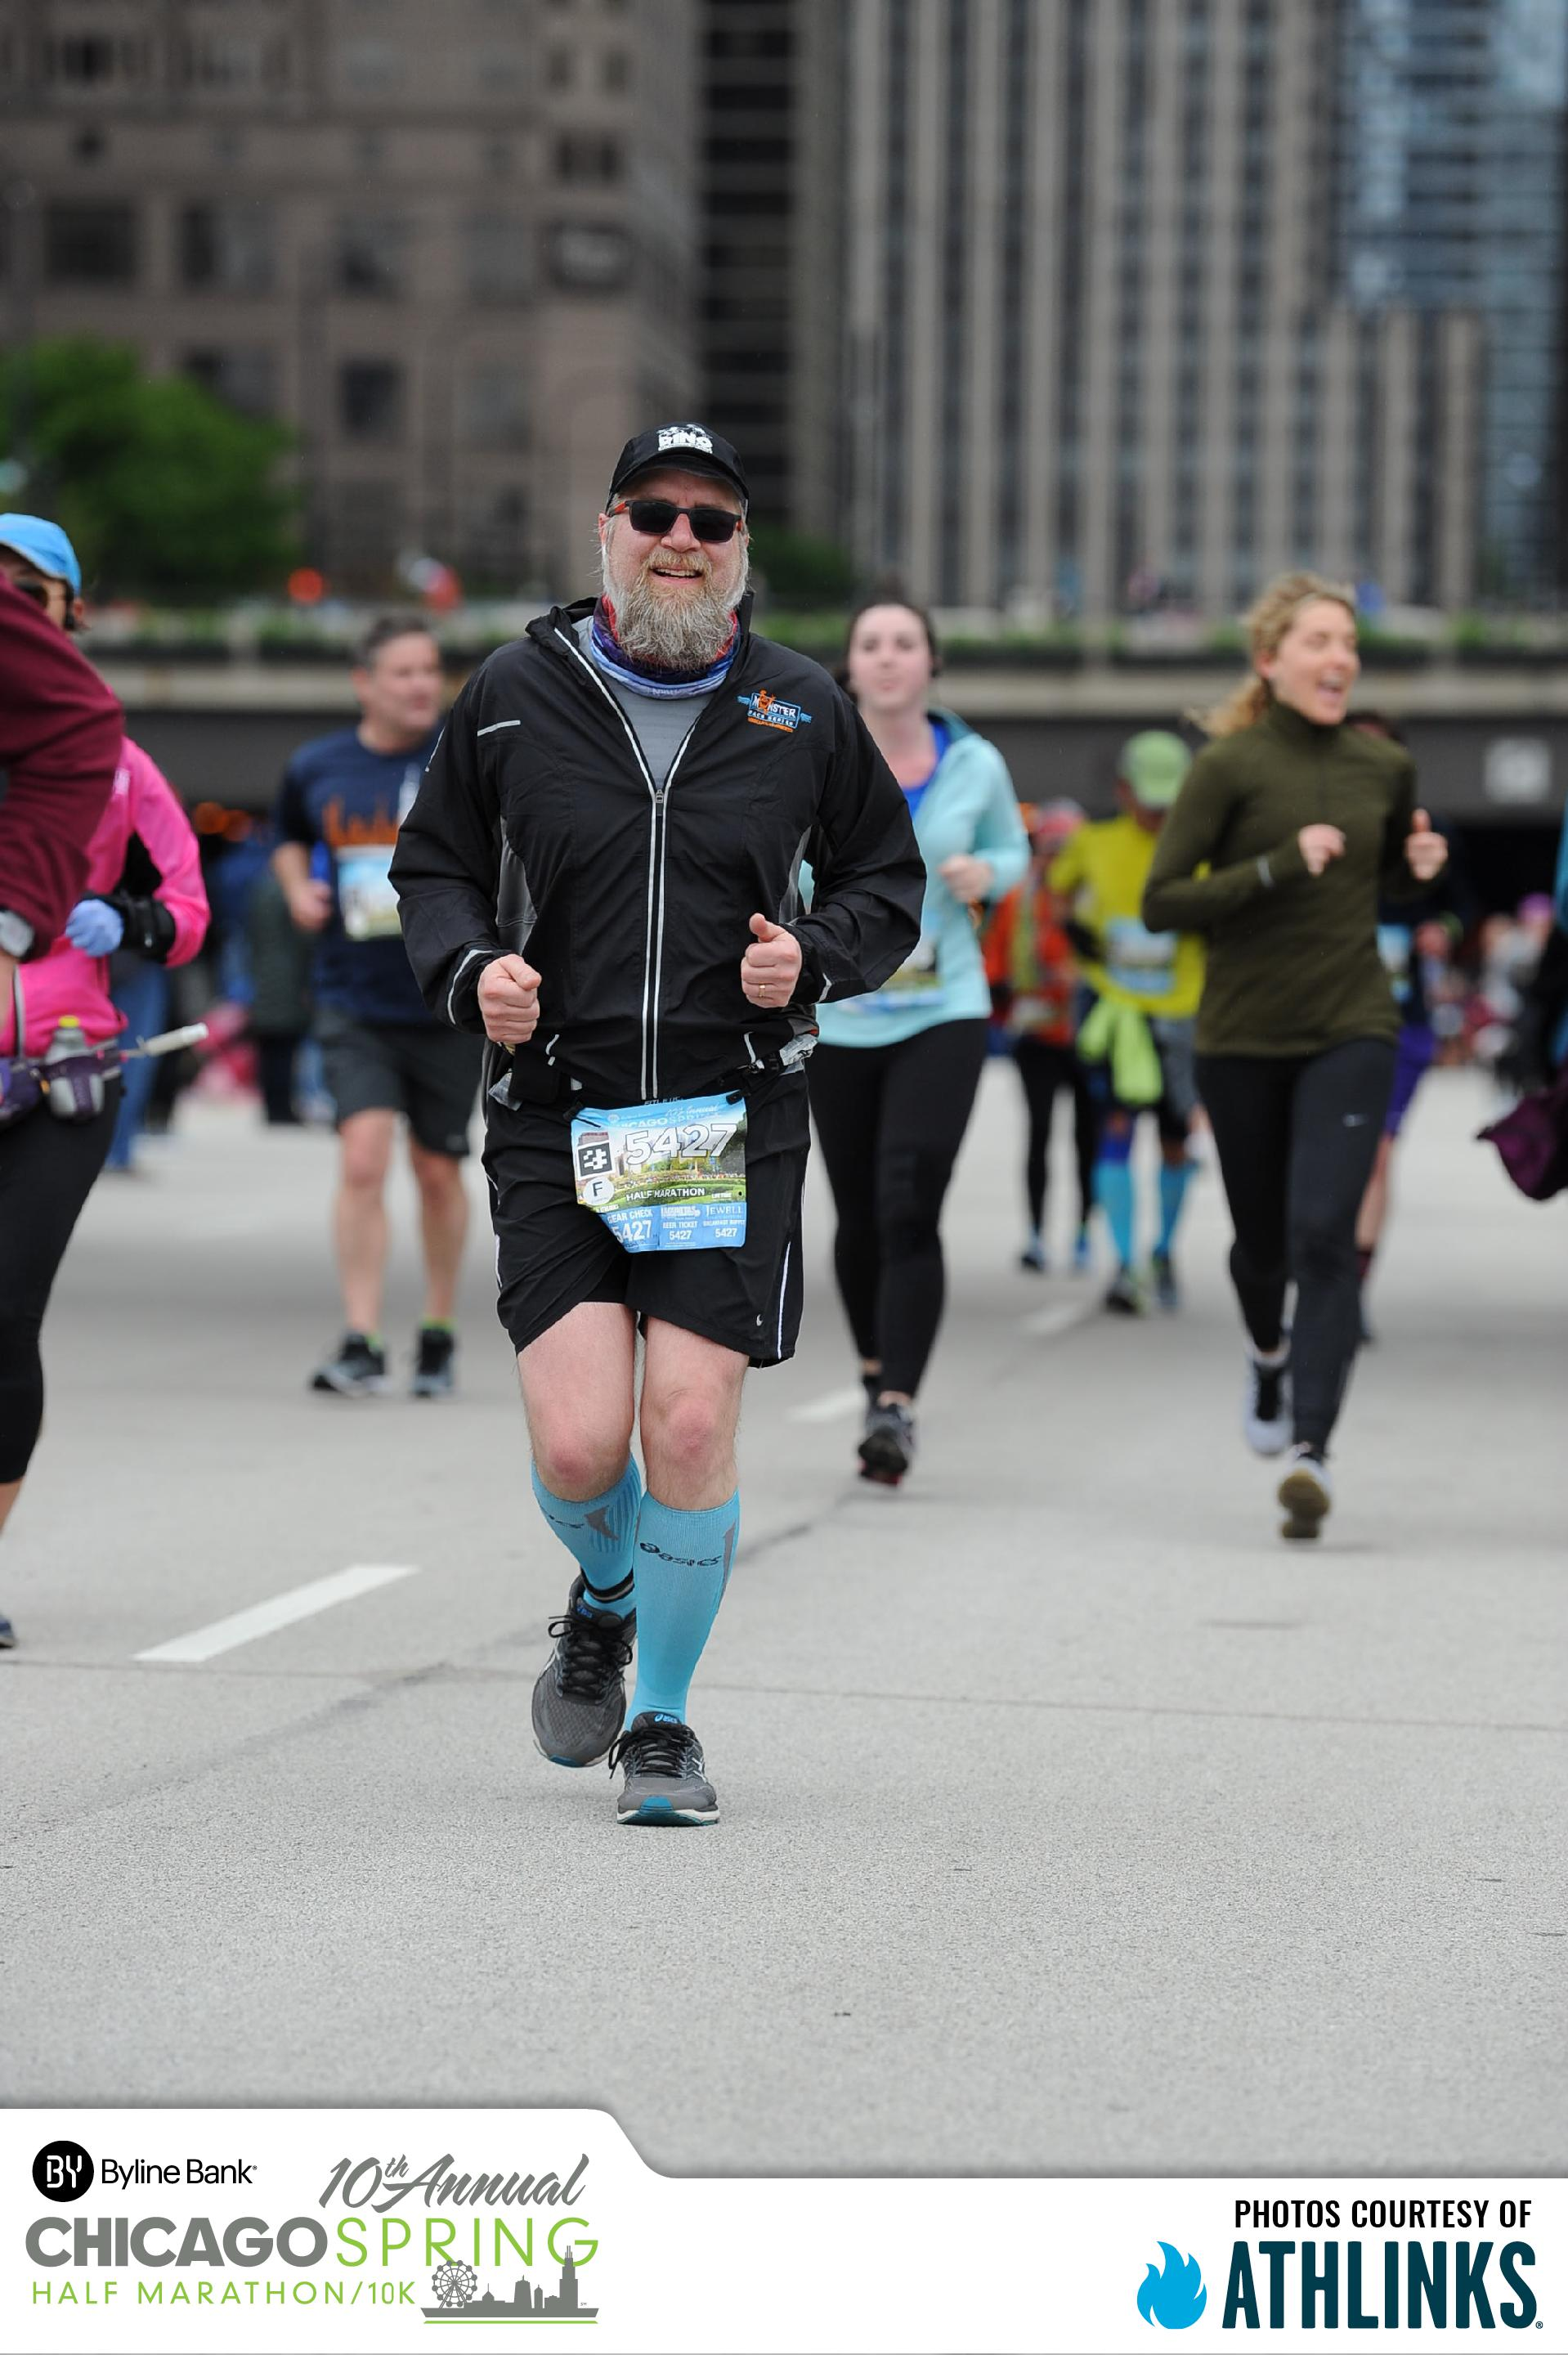 Fuzzy running the Chicago Spring Half Marathon